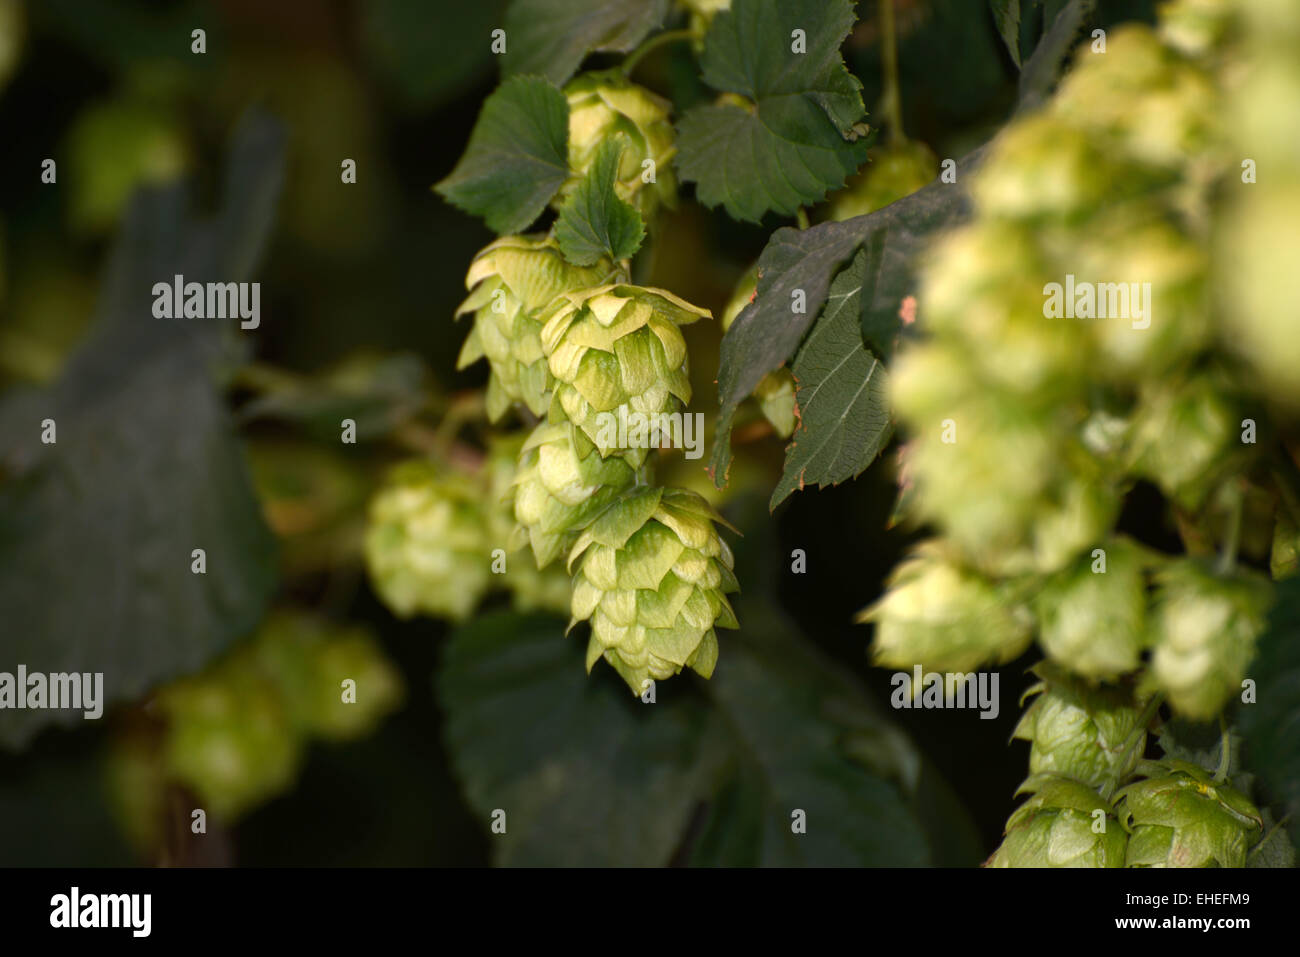 Flowers of the hops plant, Humulus lupulus, growing near Nelson, New Zealand - Stock Image